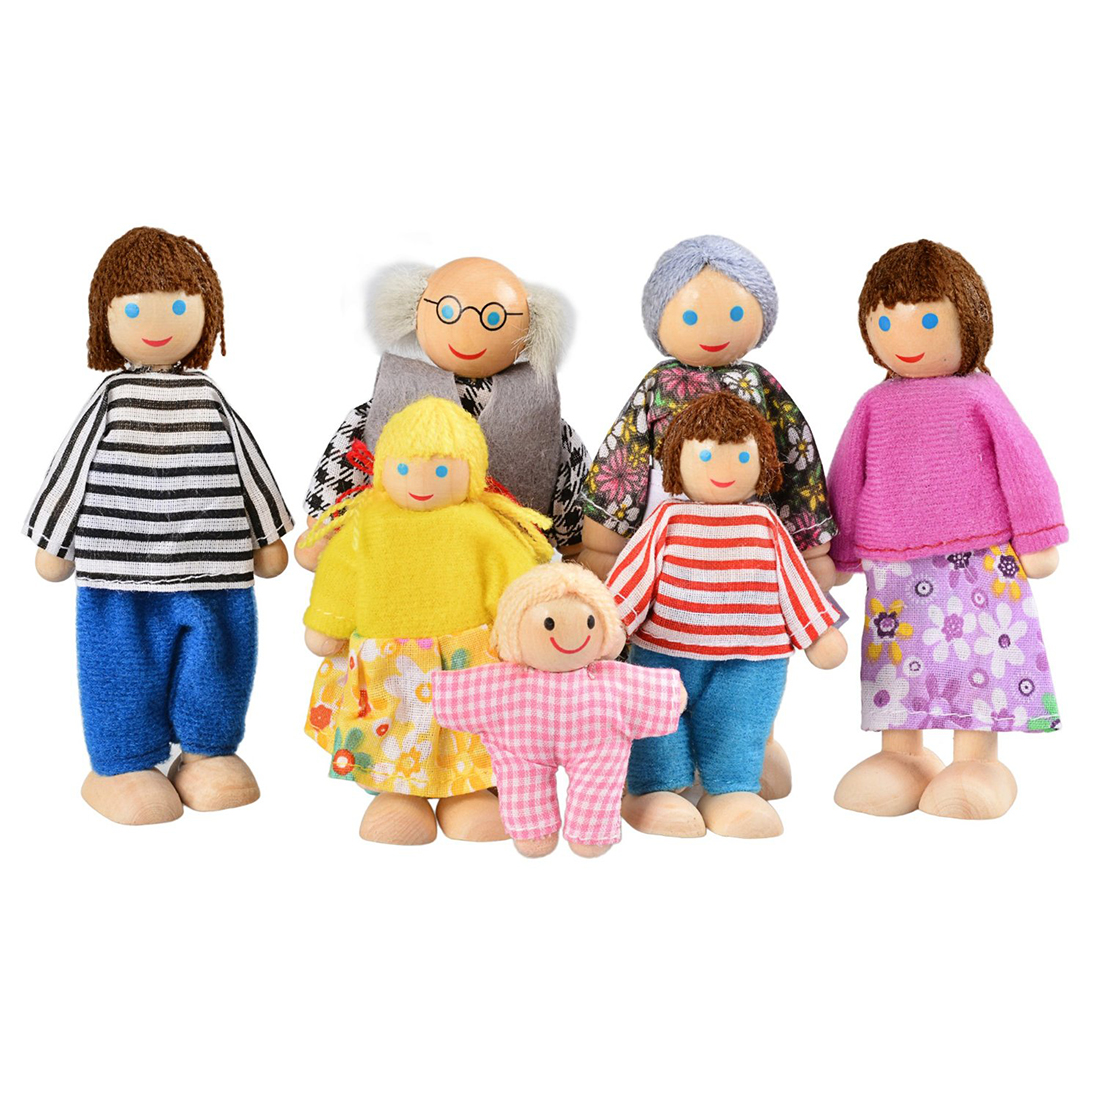 Happy Doll Family of 7 6 5 4 People Wooden Toy Set Kids Playing Doll Gift Kids Pretend Toys Happy Dollhouse Family клипсы happy charms family цвет серебряный зеленый noaj0593